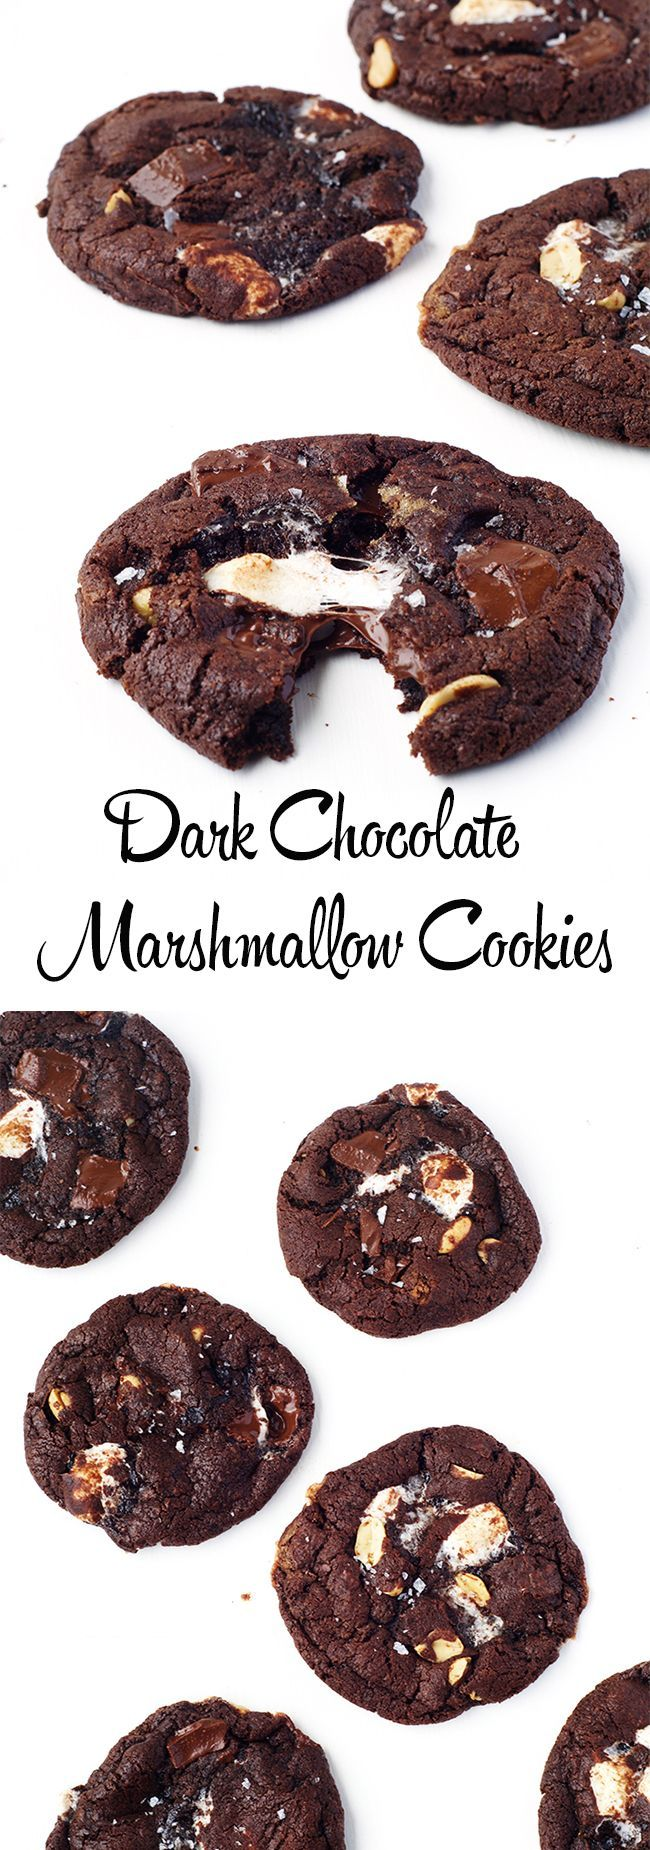 Dark Chocolate Marshmallow Cookies | via sweetestmenu.com